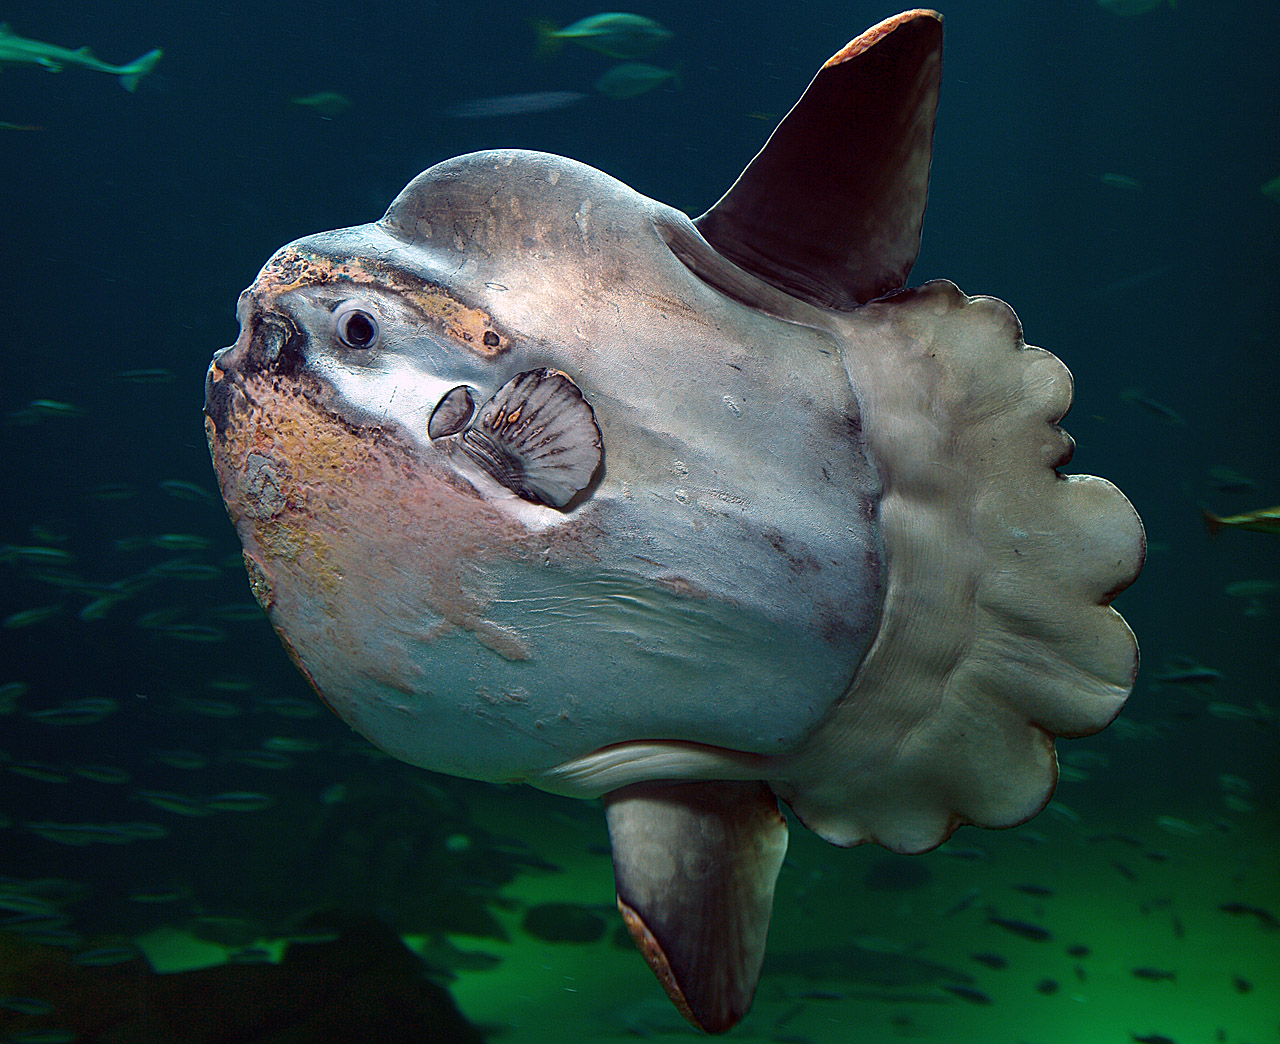 https://upload.wikimedia.org/wikipedia/commons/8/84/Sunfish2.jpg